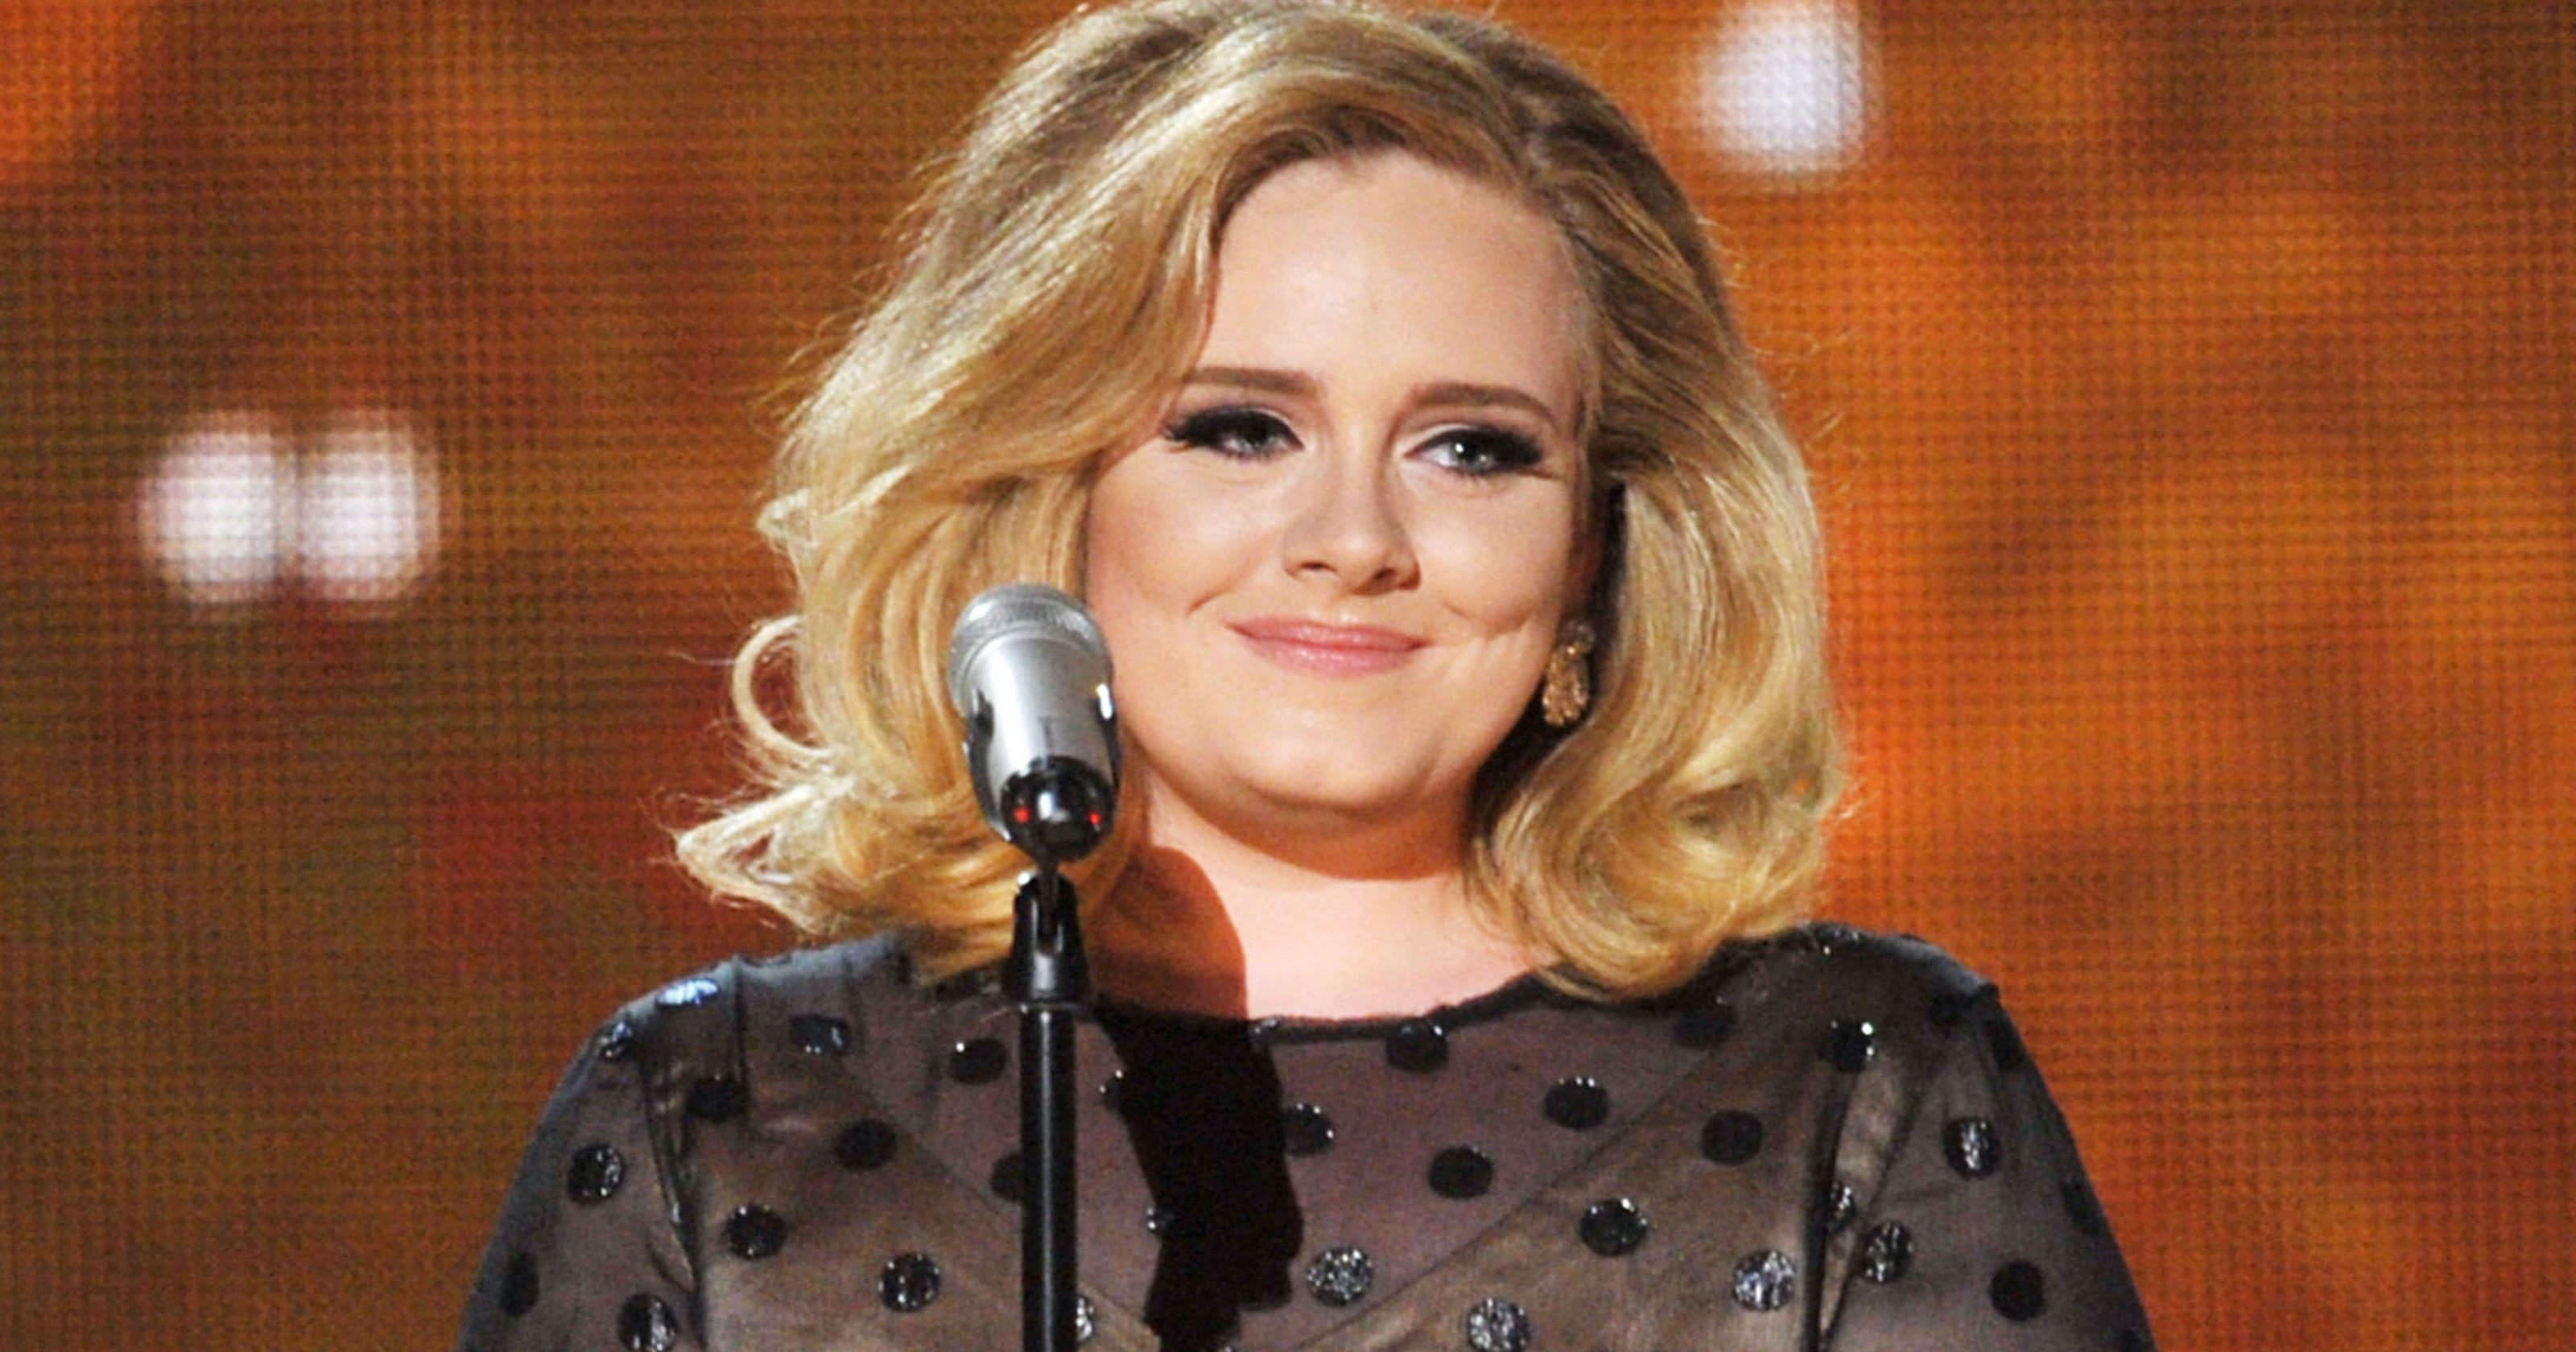 Adele's 'Hello' Sells 1.1M Downloads Its First Week